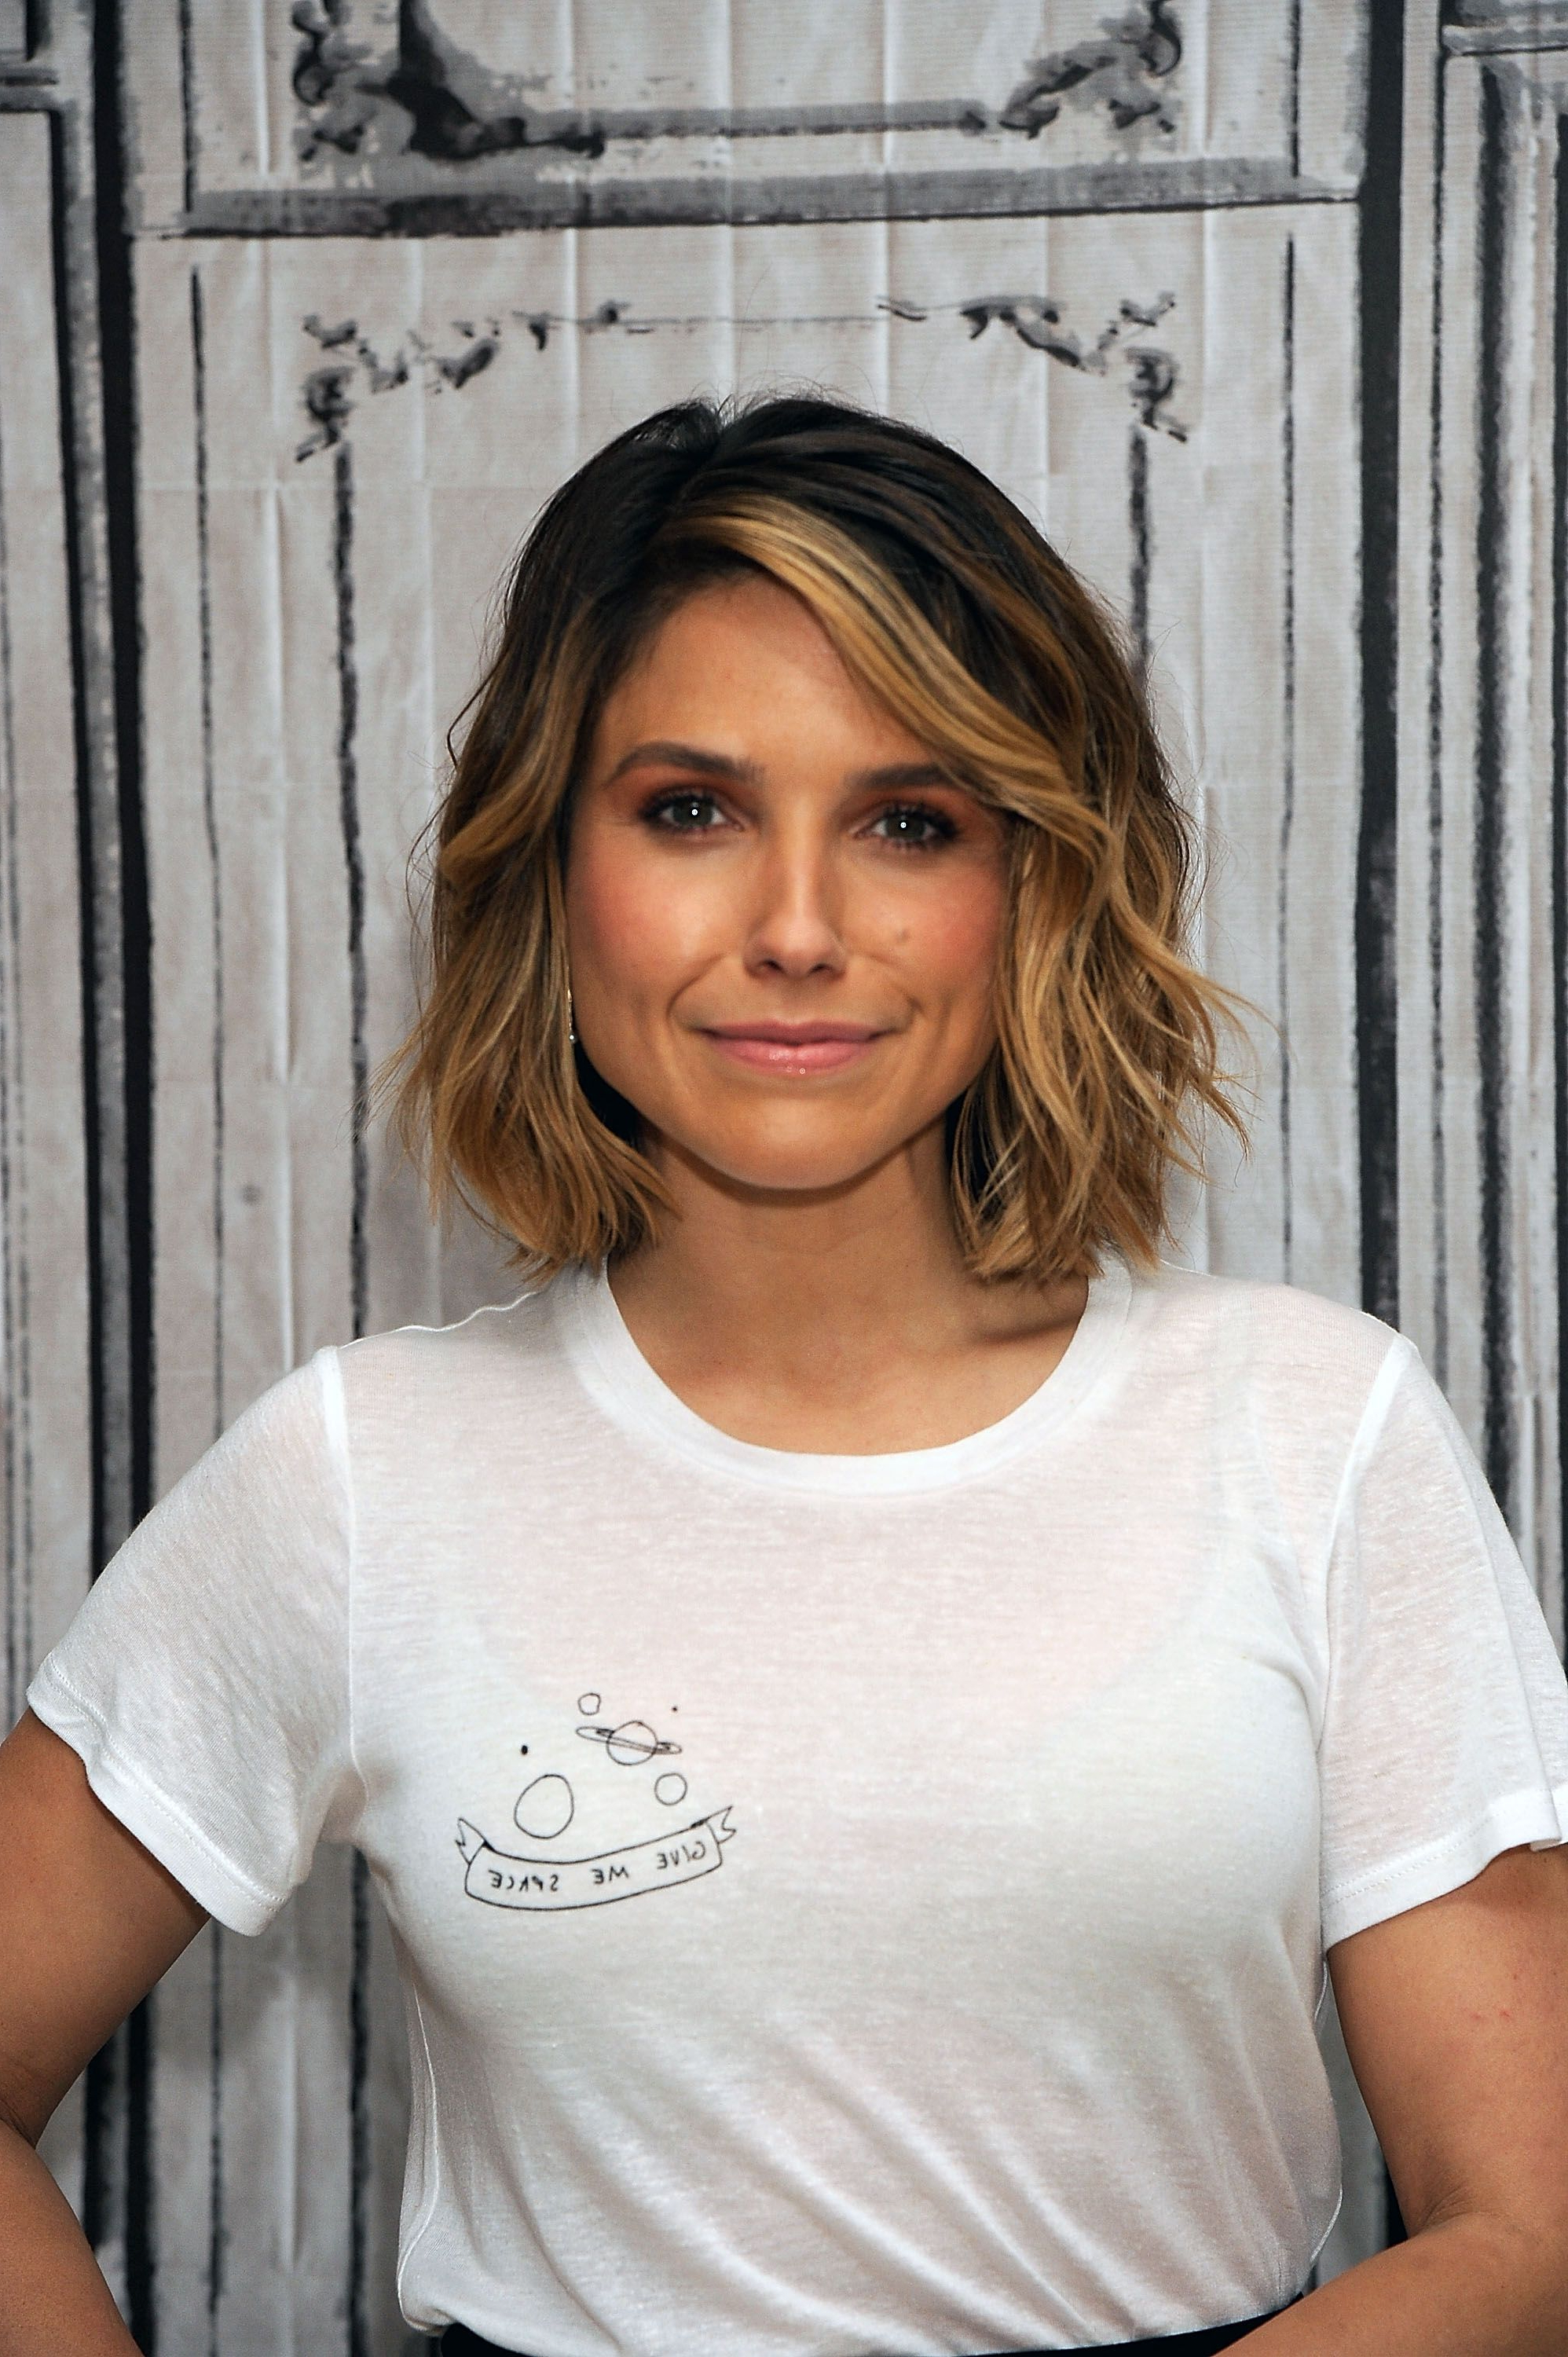 The 27 Biggest Hair Color Trends Of The Year | Haircuts | Pinterest Inside Sophia Bush Short Hairstyles (View 25 of 25)